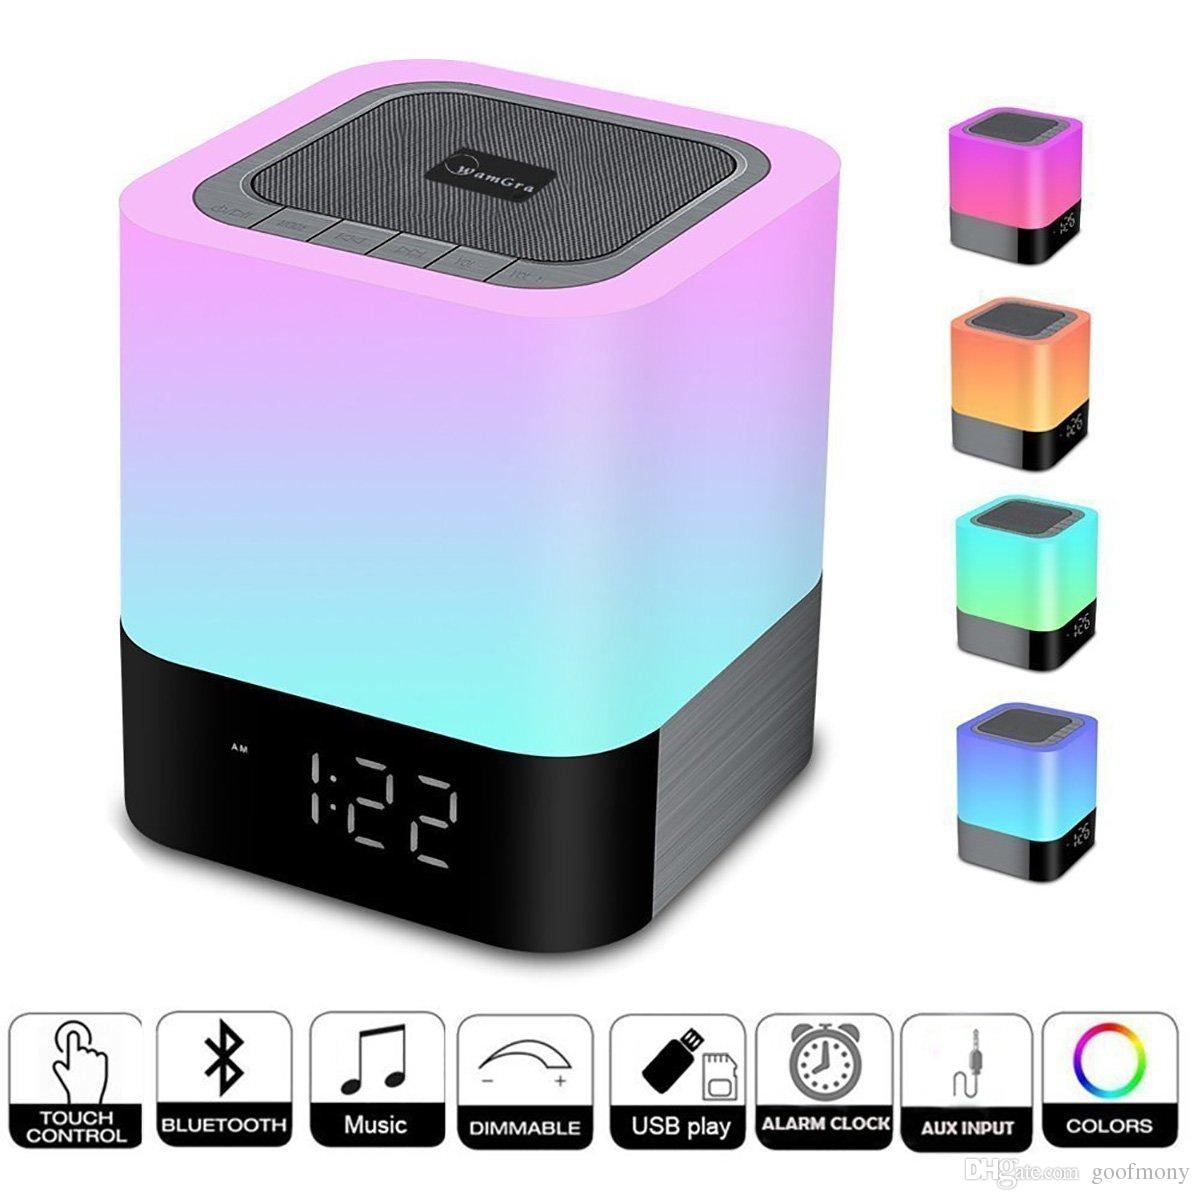 Night lights Bluetooth Speaker,Touch Sensor Bedside Lamp Dimmable Warm Light,Color Changing Bedside Lamp,MP3 Music Player,Wireless Speaker w